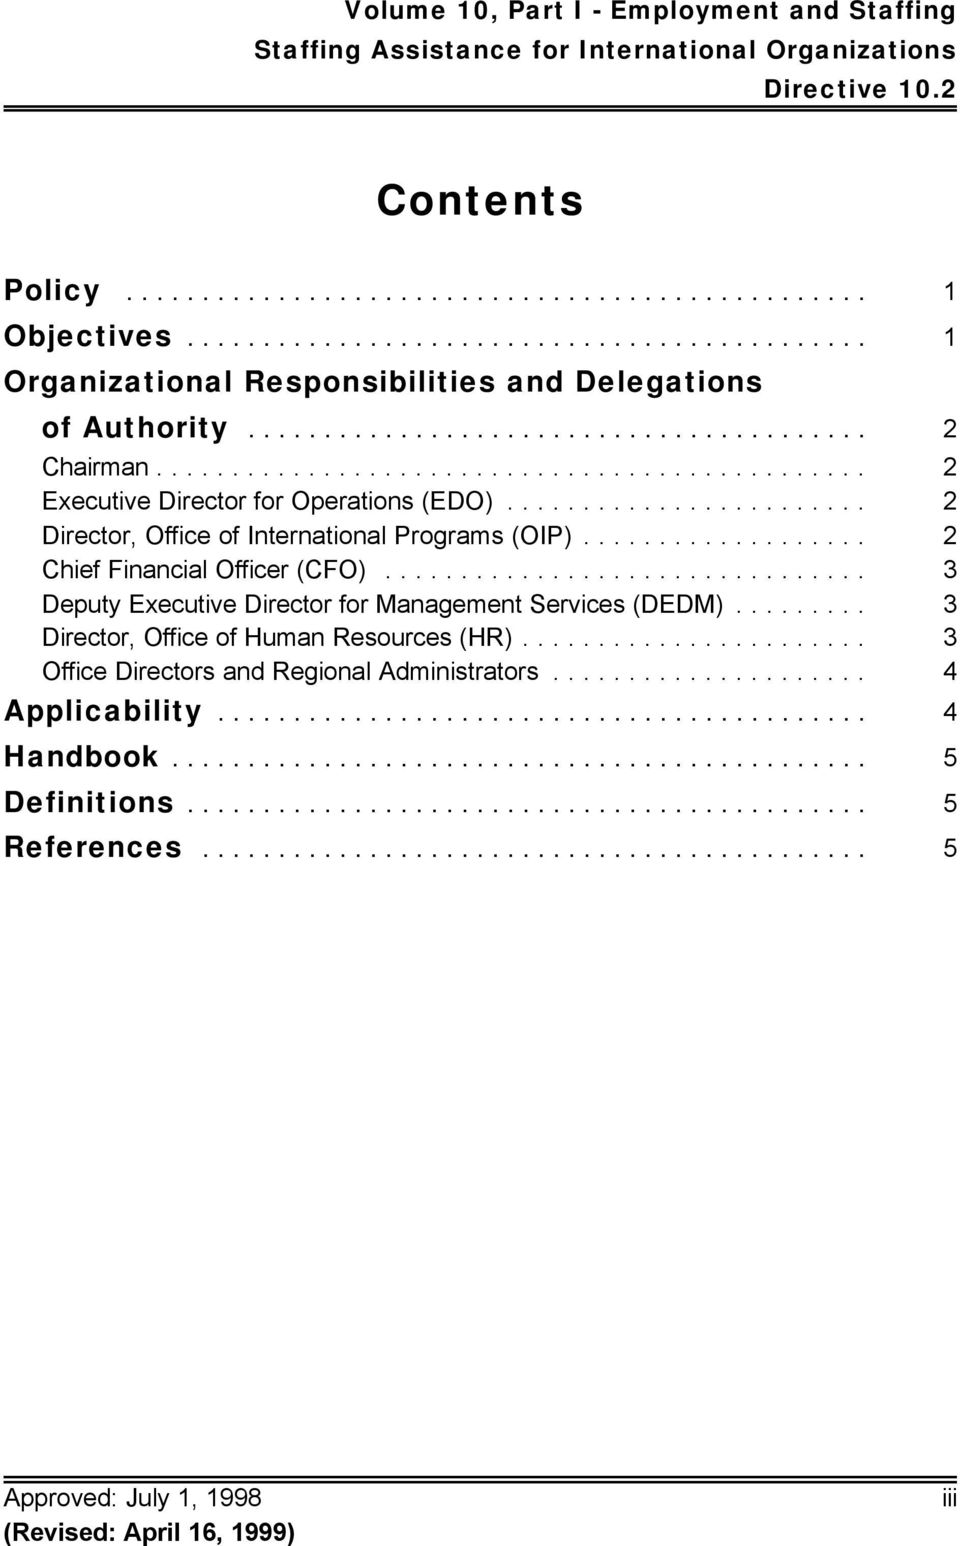 .. 2 Chief Financial Officer (CFO)... 3 Deputy Executive Director for Management Services (DEDM).